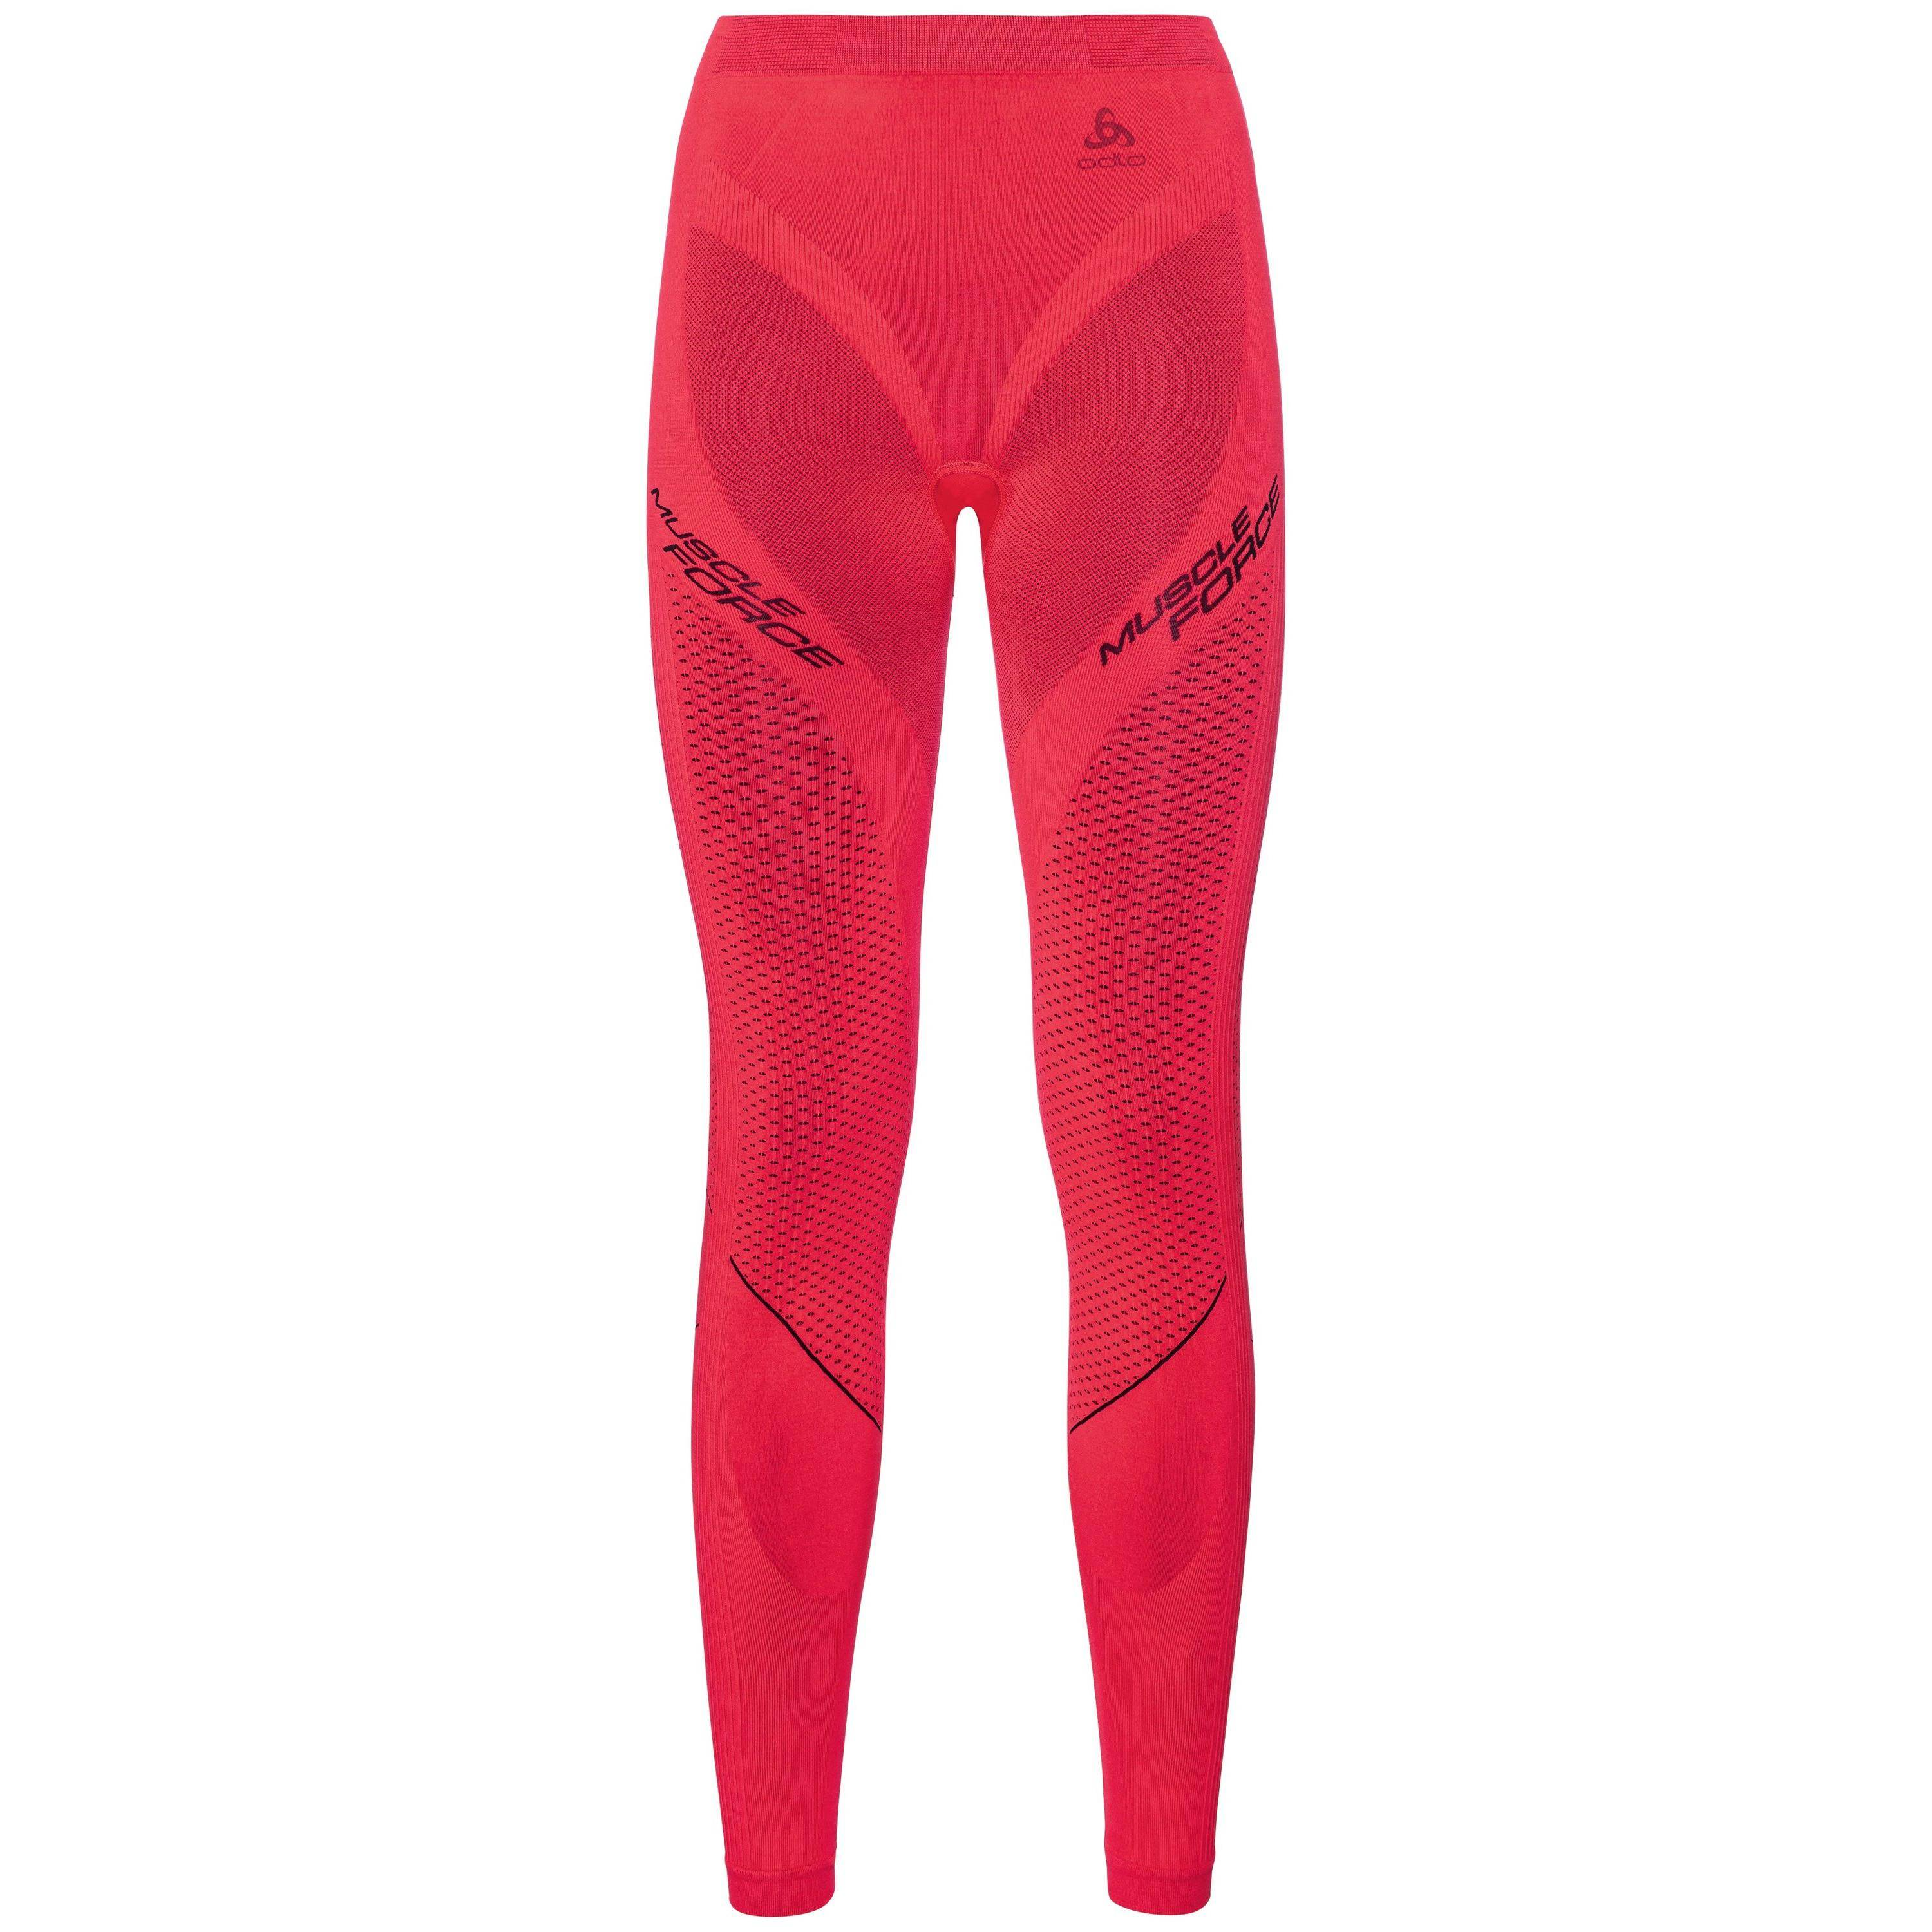 Odlo SVS Bas collant Performance MUSCLE FORCE RUNNING Warm diva pink - odyssey gray taille: L